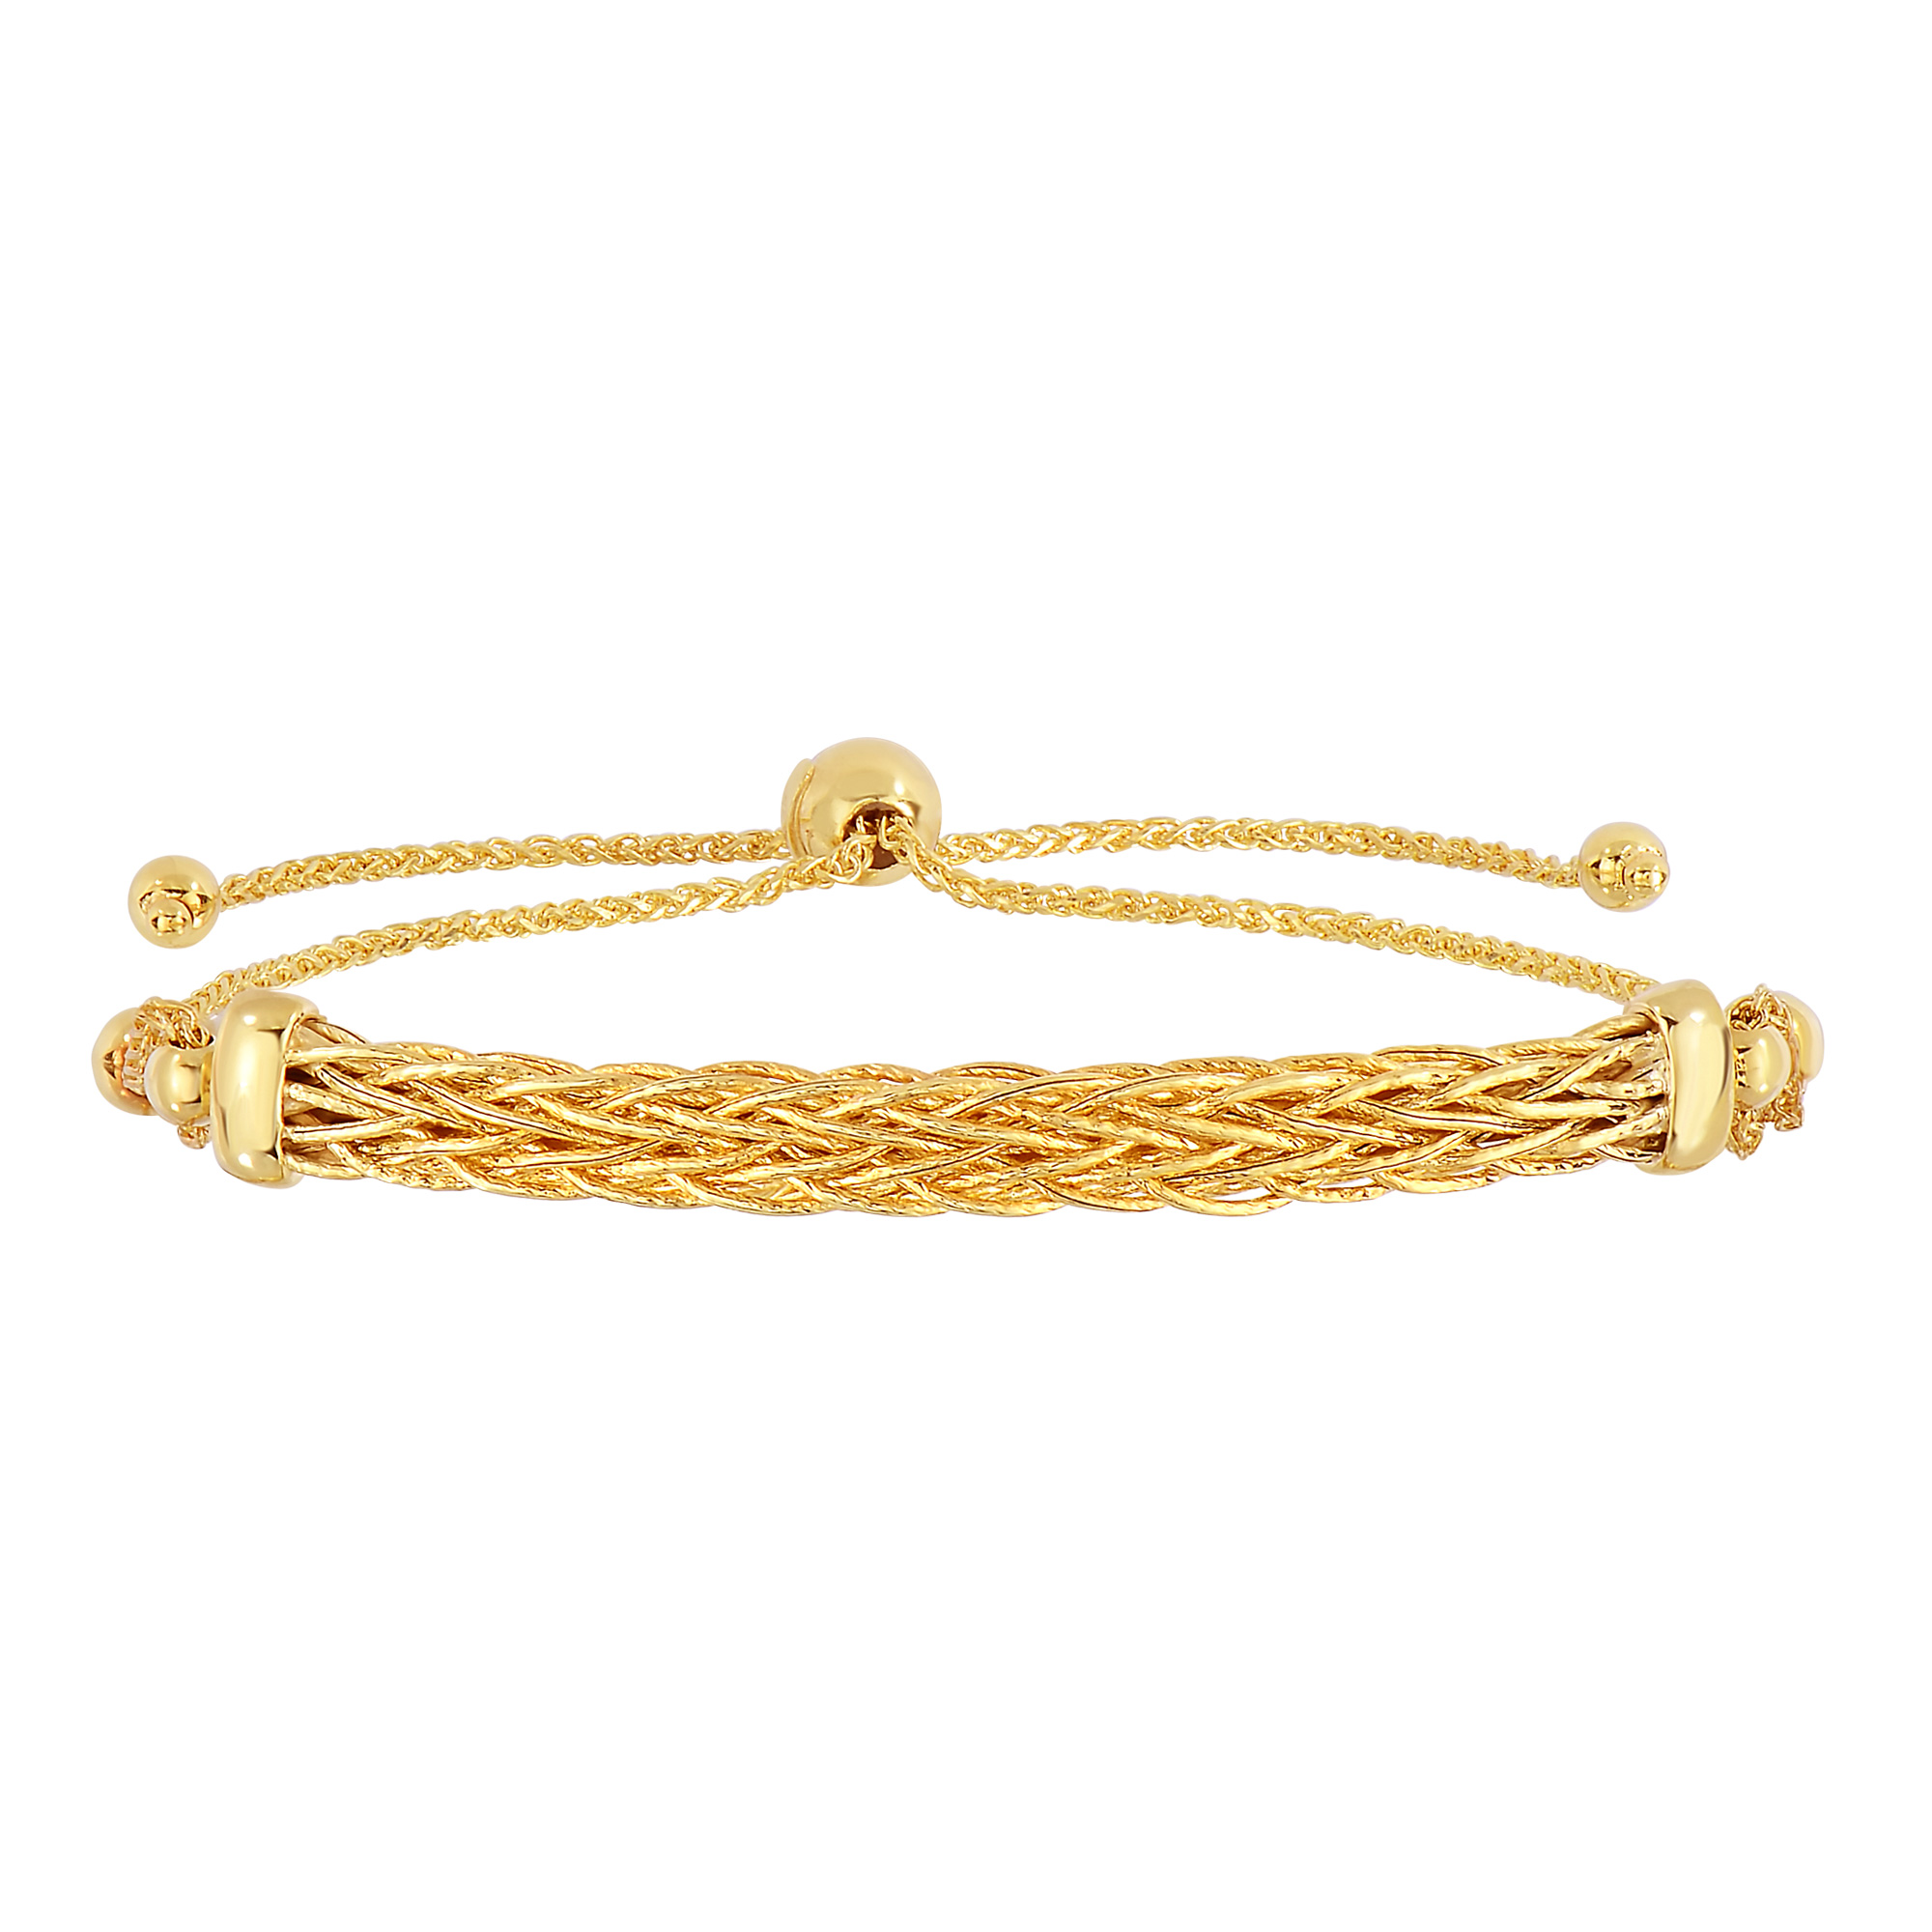 14K Yellow Gold Diamond Cut Round Wheat Adjustable Bracelet With Arched Weave Center Element, 9.25  Crafted in 14K gold, Our BOLO friendship line of bracelets are stylish easy to wear and a one of a kind collection. Meticulously executed in high quality finish 14K gold, these iconic bracelets are easily adjusted to fit any wrist. Each unique style of our Friendship collection looks beautiful worn as one piece alone or stacked with multiple styles for a layered and modern look. The bracelet comes in an elegant jewelry gift box, perfect for any gift giving occasion.